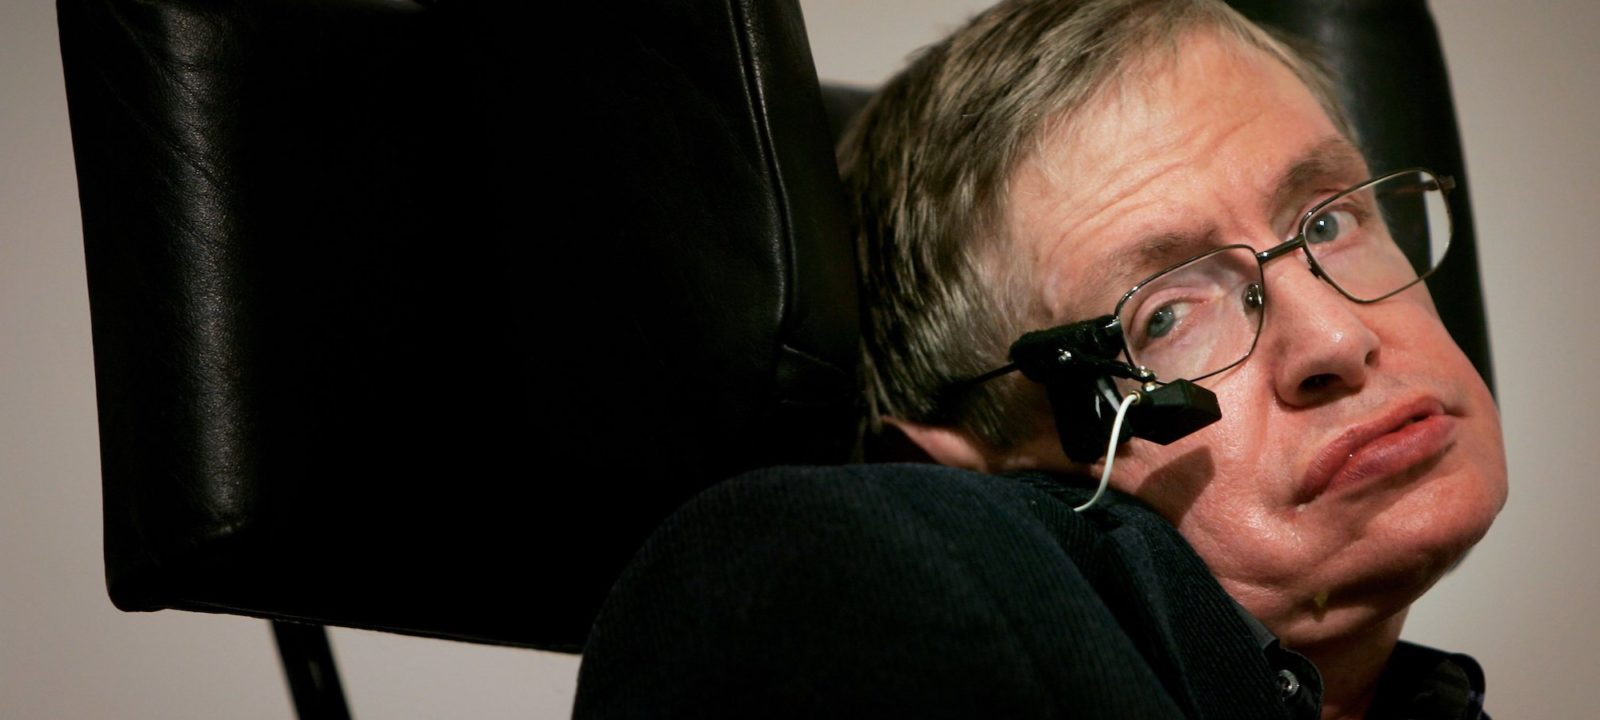 Professor Stephen Hawking delivers his speech at the release of the 'Bulletin of the Atomic Scientists' on January 17, 2007 in London, Ebgland.  A group of scientists assessing the dangers posed to civilisation have moved the Doomsday Clock forward two minutes closer to midnight as an indication and warning of the threats of nuclear war and climate change.